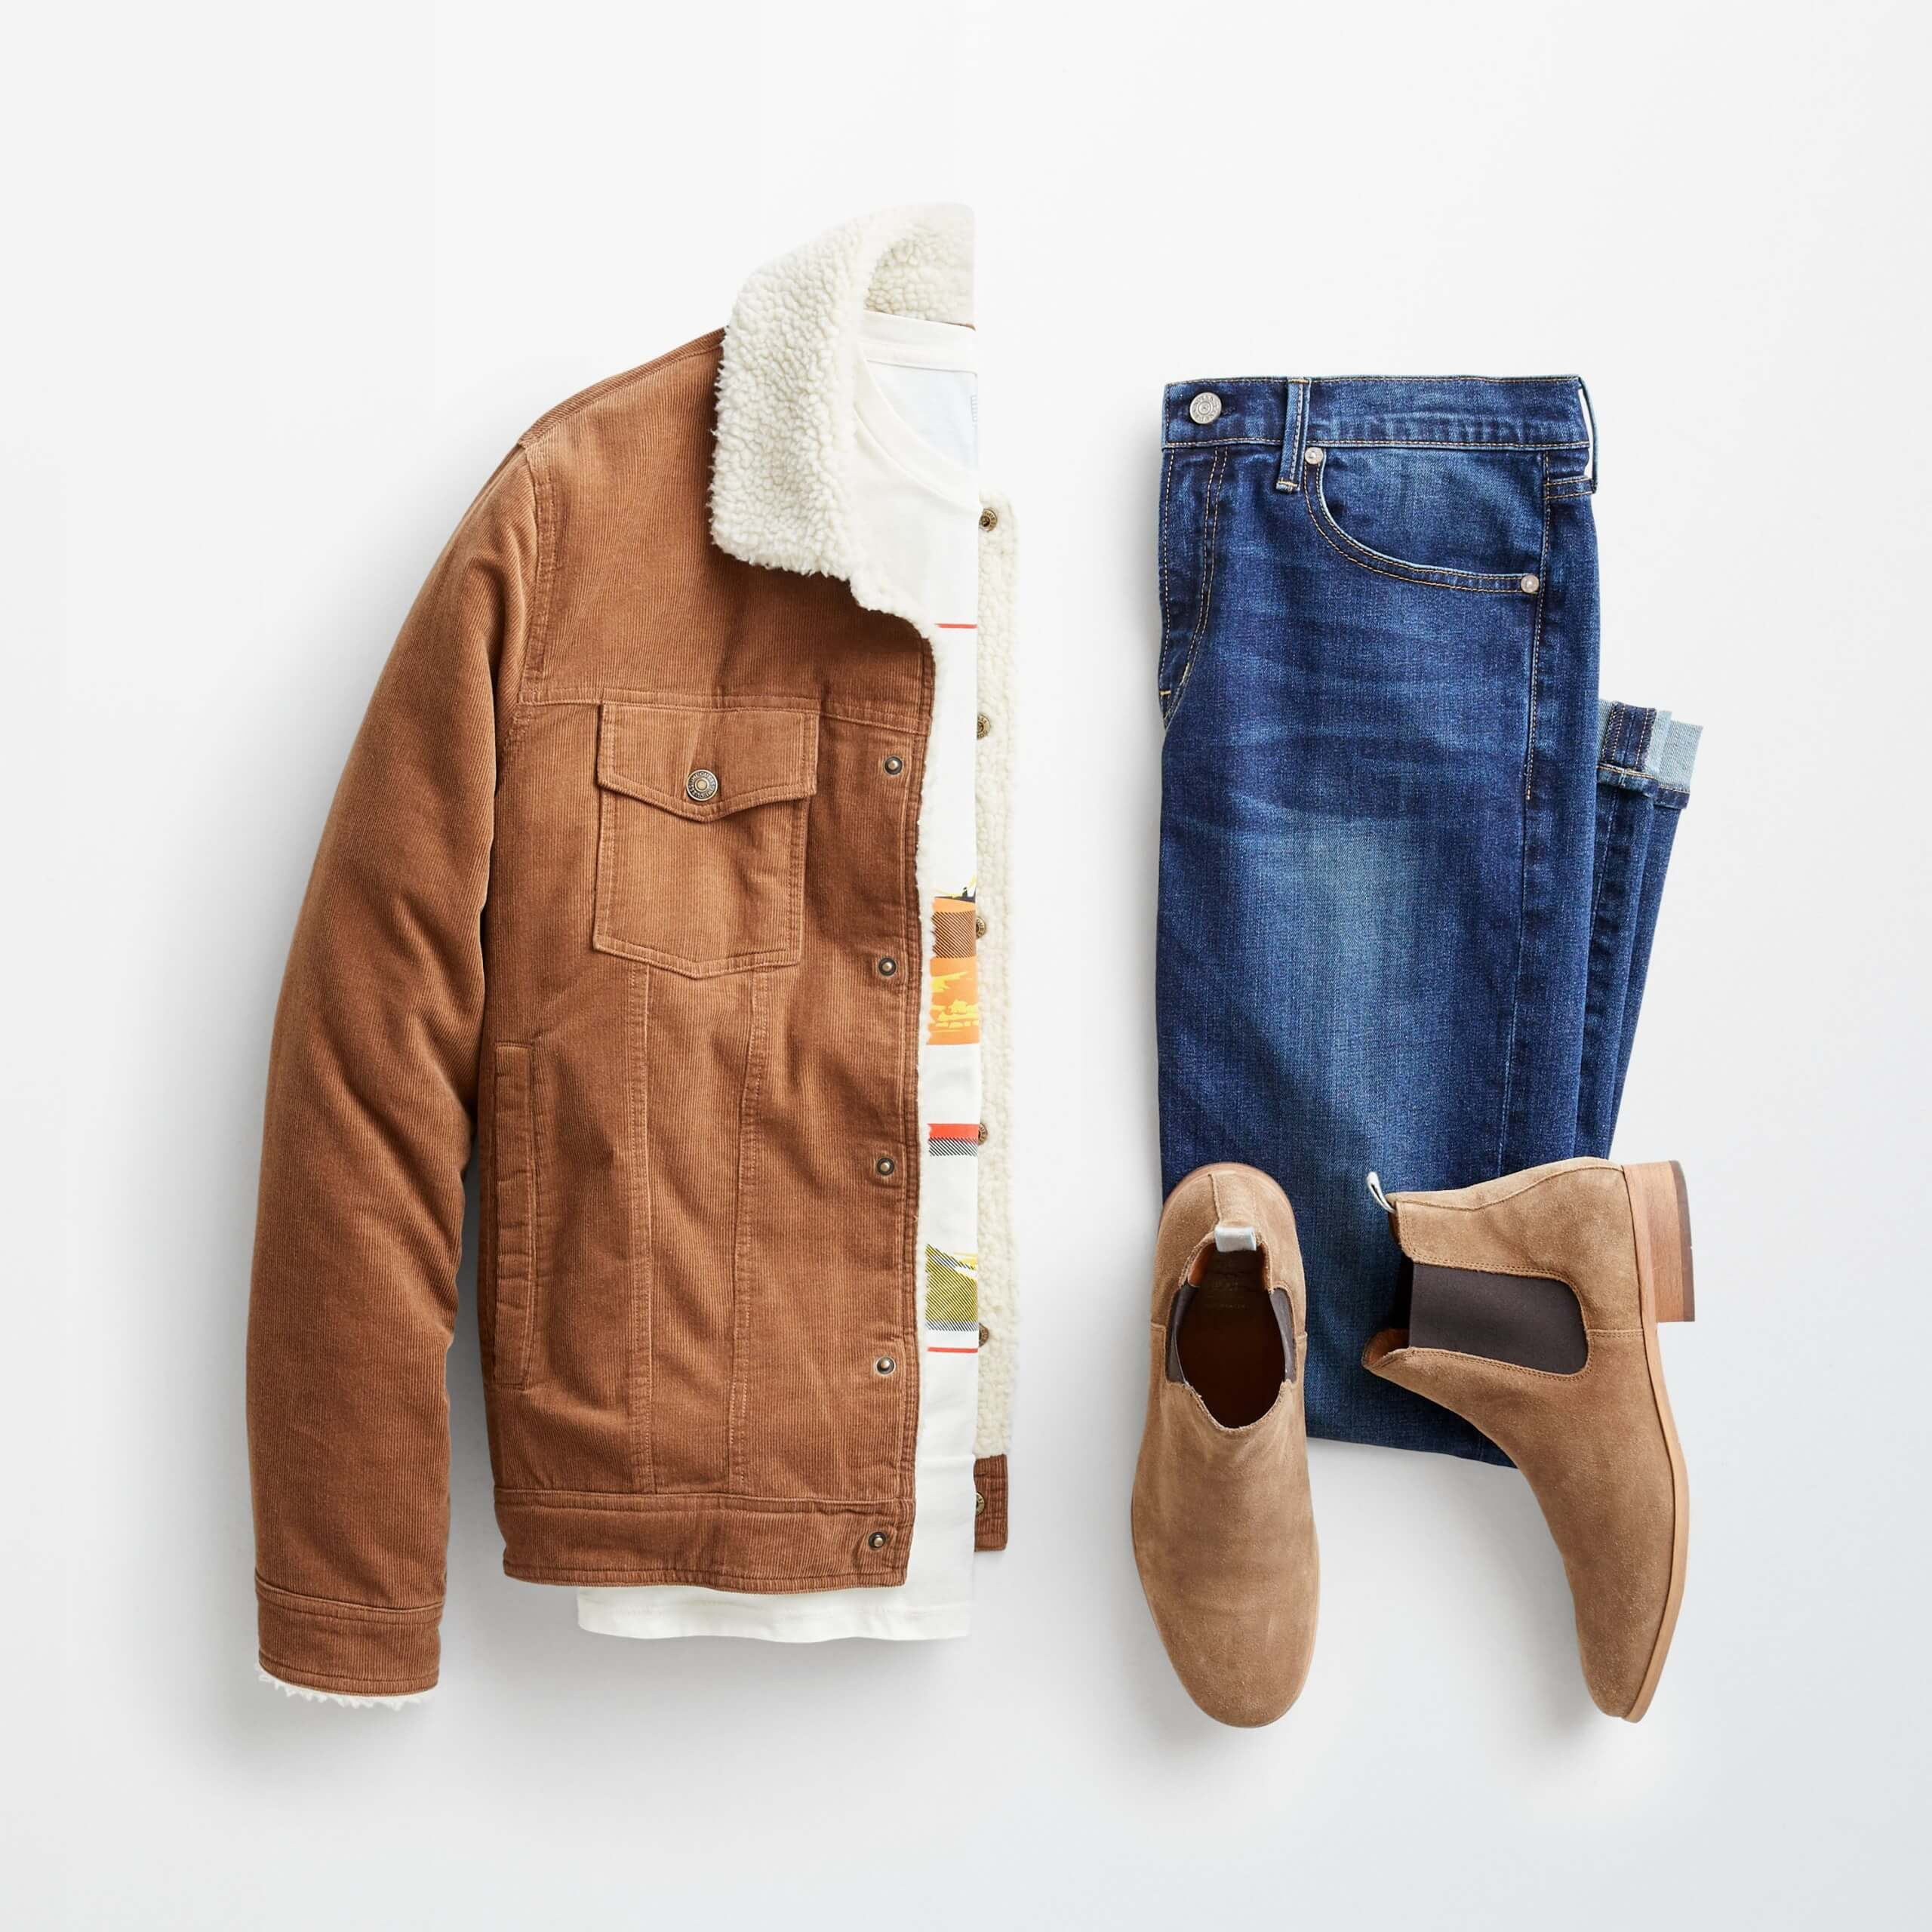 Stitch Fix Men's outfit laydown featuring a brown corduroy jacket with sherpa lining over a graphic t-shirt, next to folded blue jeans and brown chelsea boots.